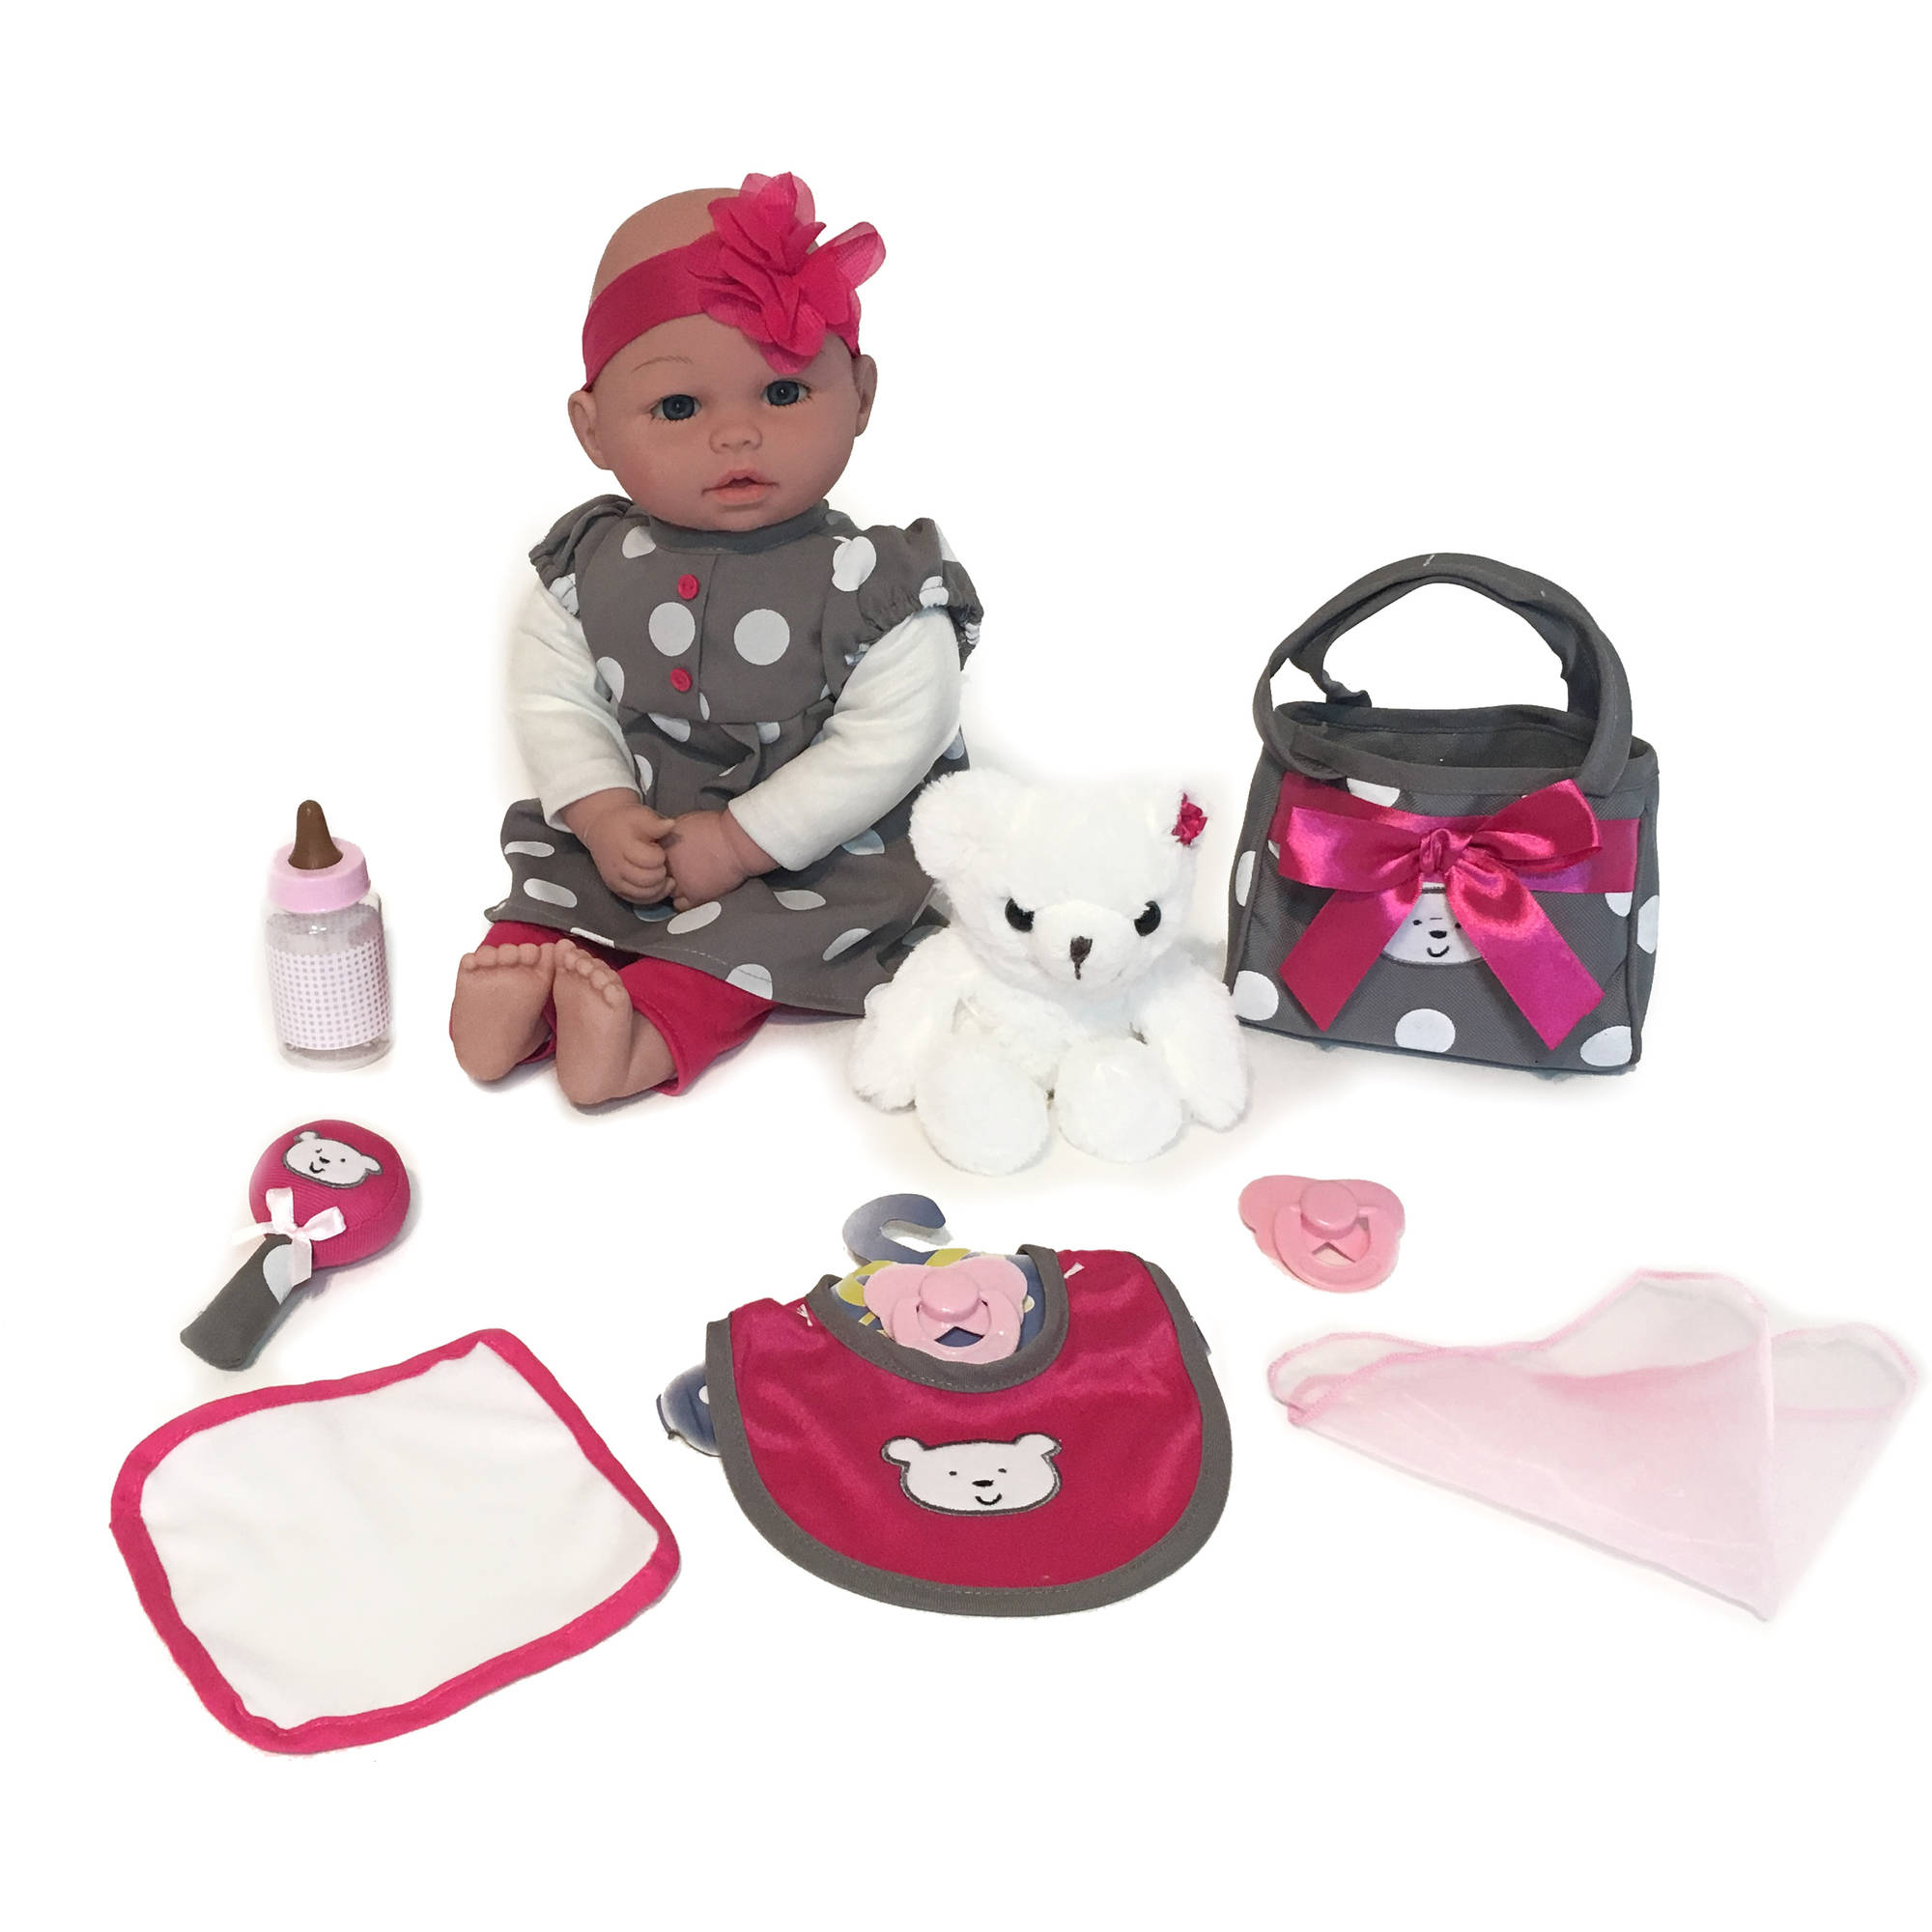 "My Sweet Love 18"" Baby Doll Gift Set with Bear by"